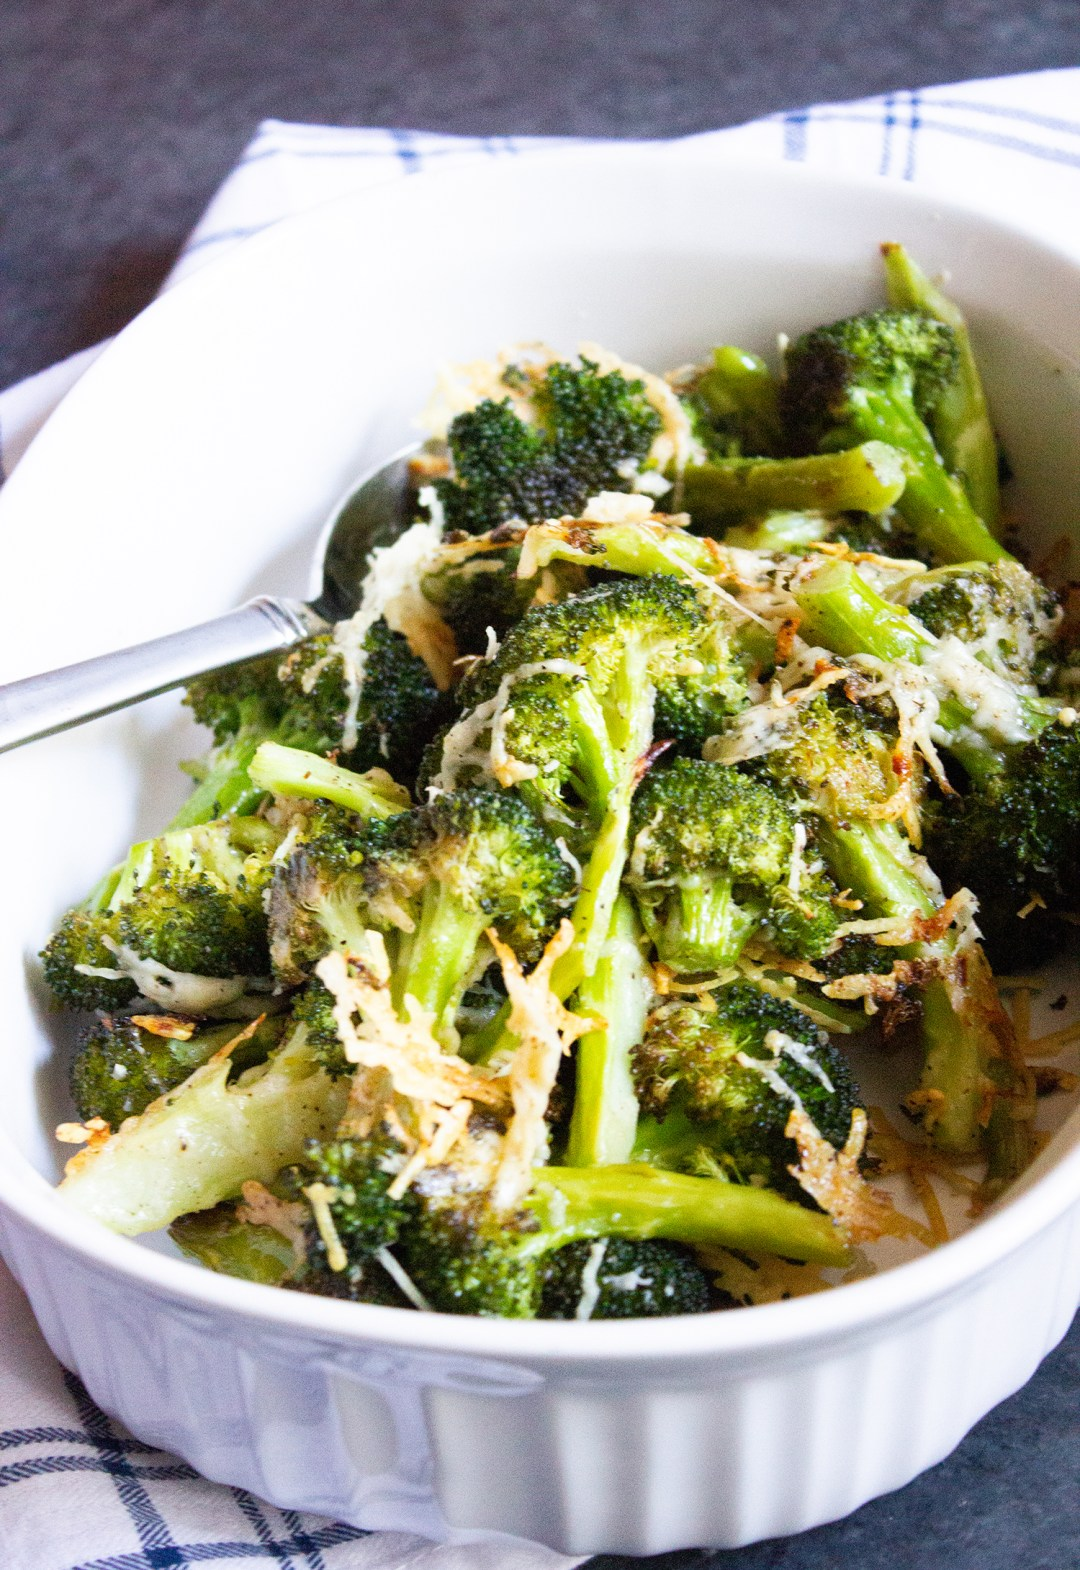 Parmesan Roasted Broccoli, roasted broccoli, broccoli, vegetables, side dish, coco and ash